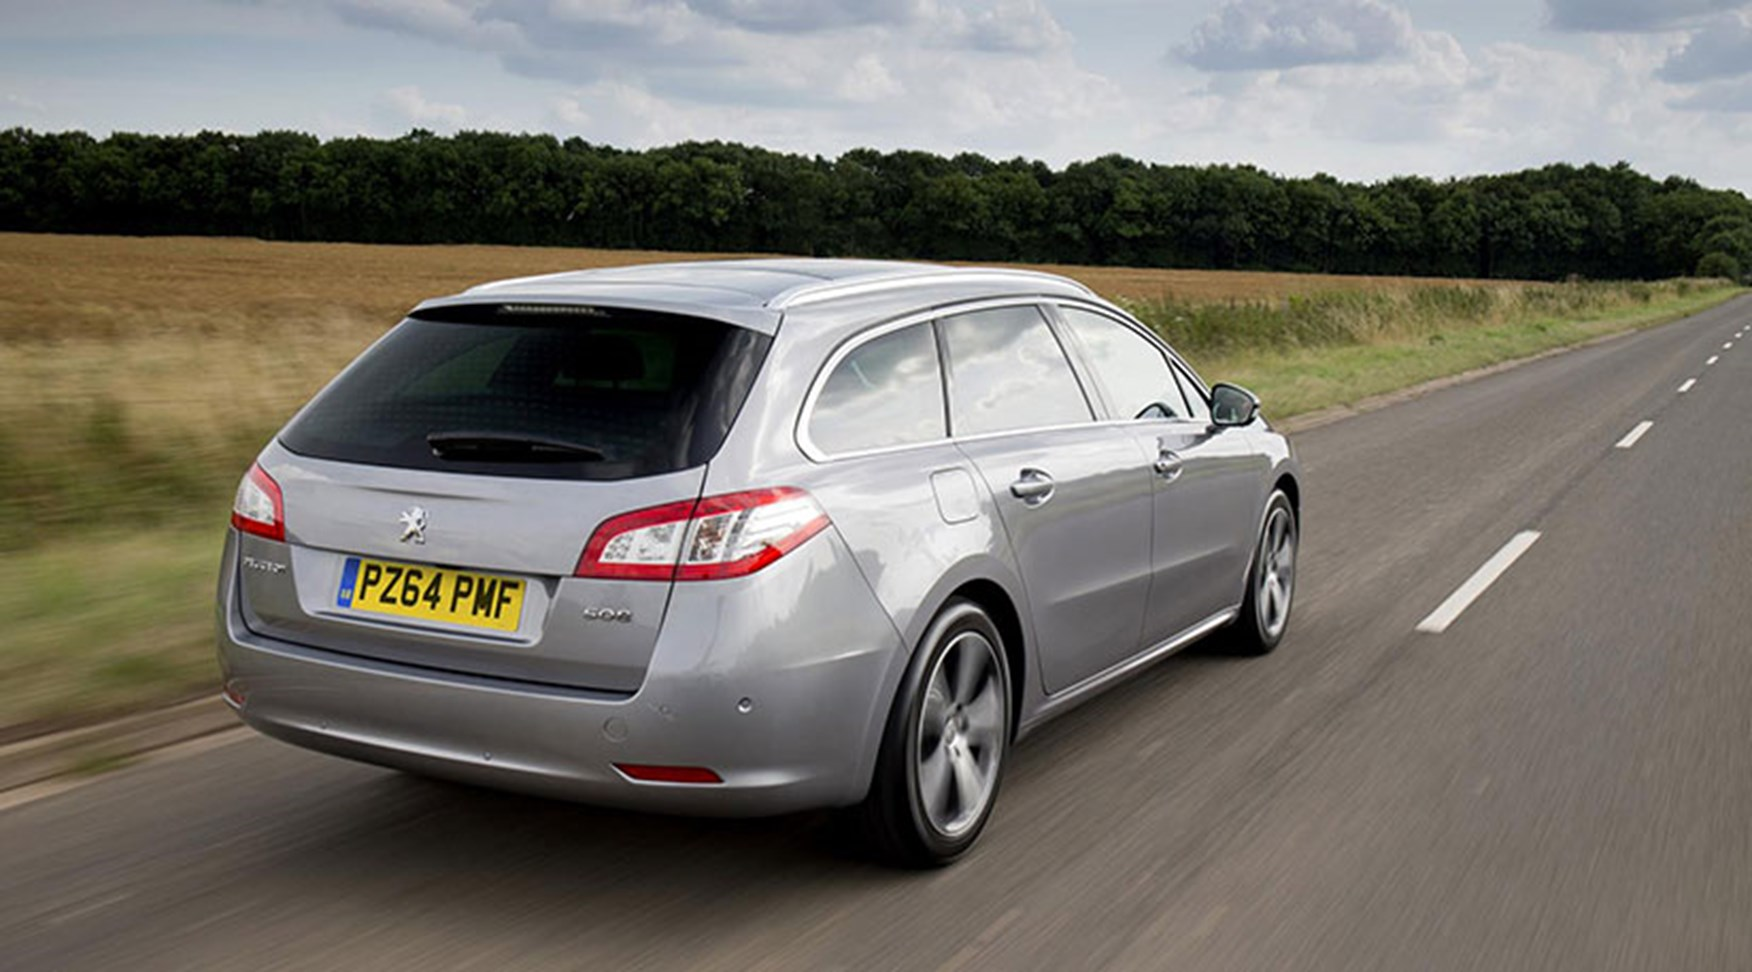 Peugeot 508 SW HDI 140 Allure (2015) review | CAR Magazine